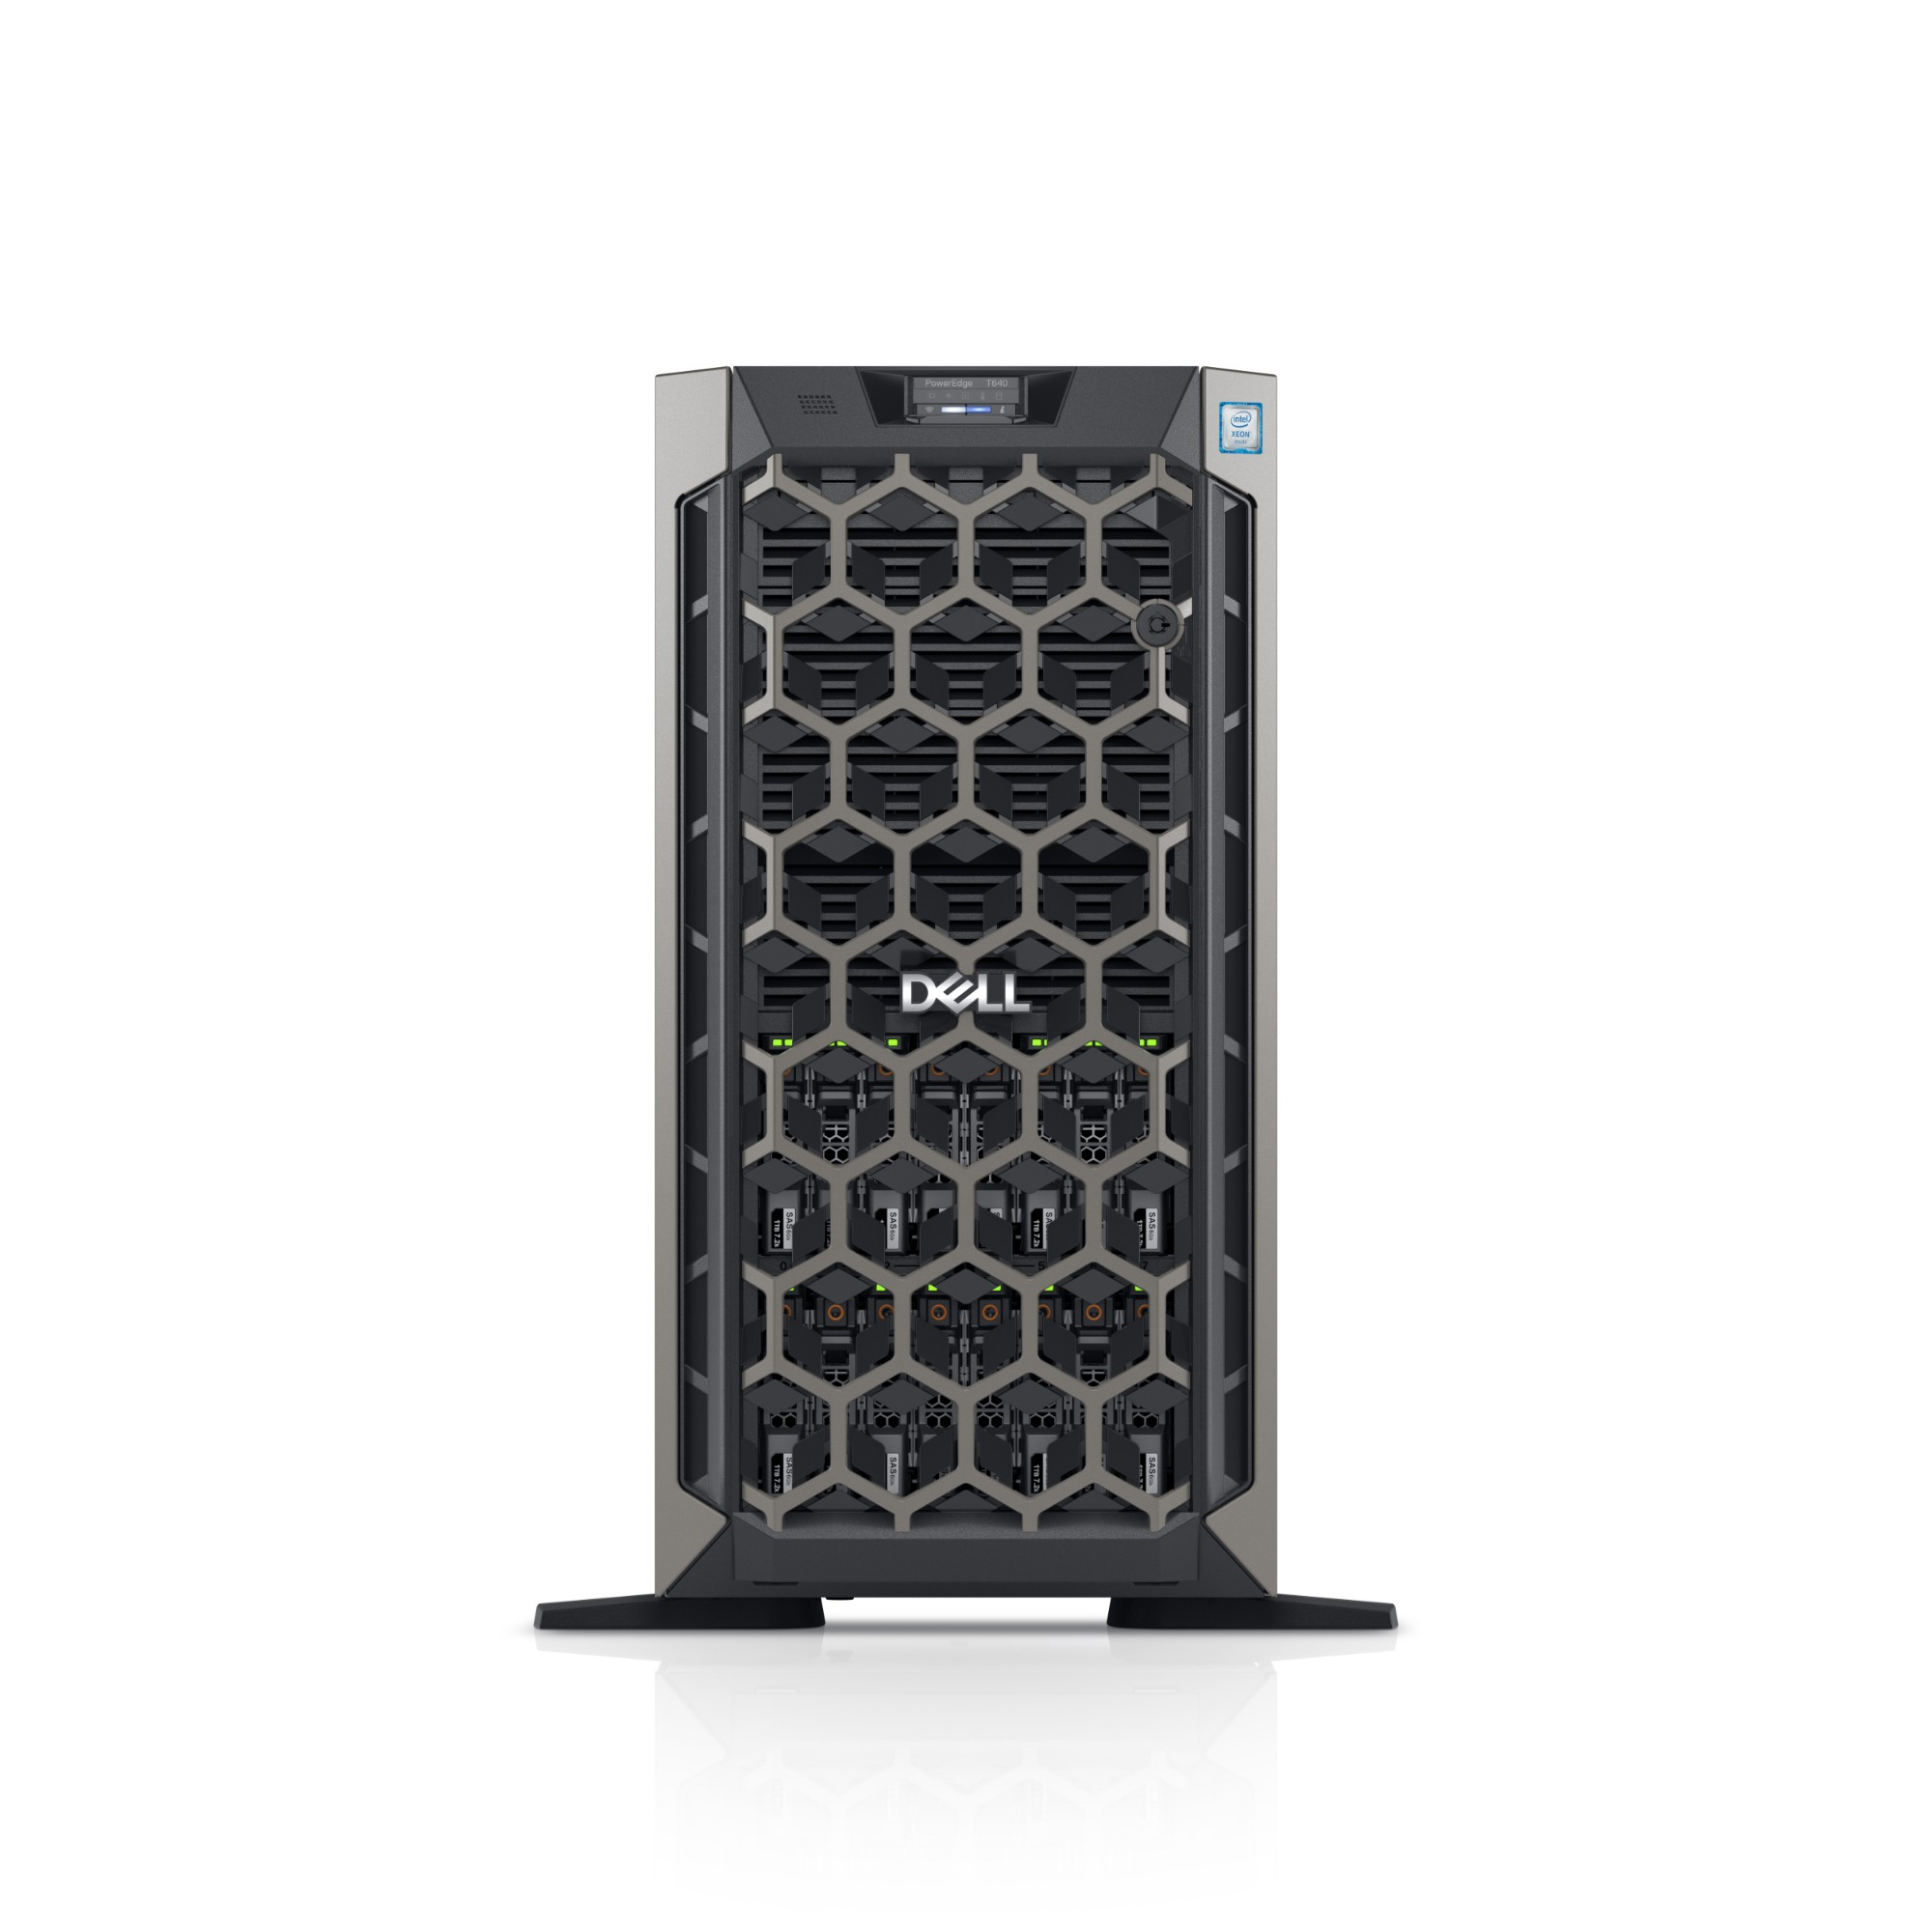 DELL PowerEdge T640 server 2 1 GHz Intel® Xeon® 4110 Tower 750 W